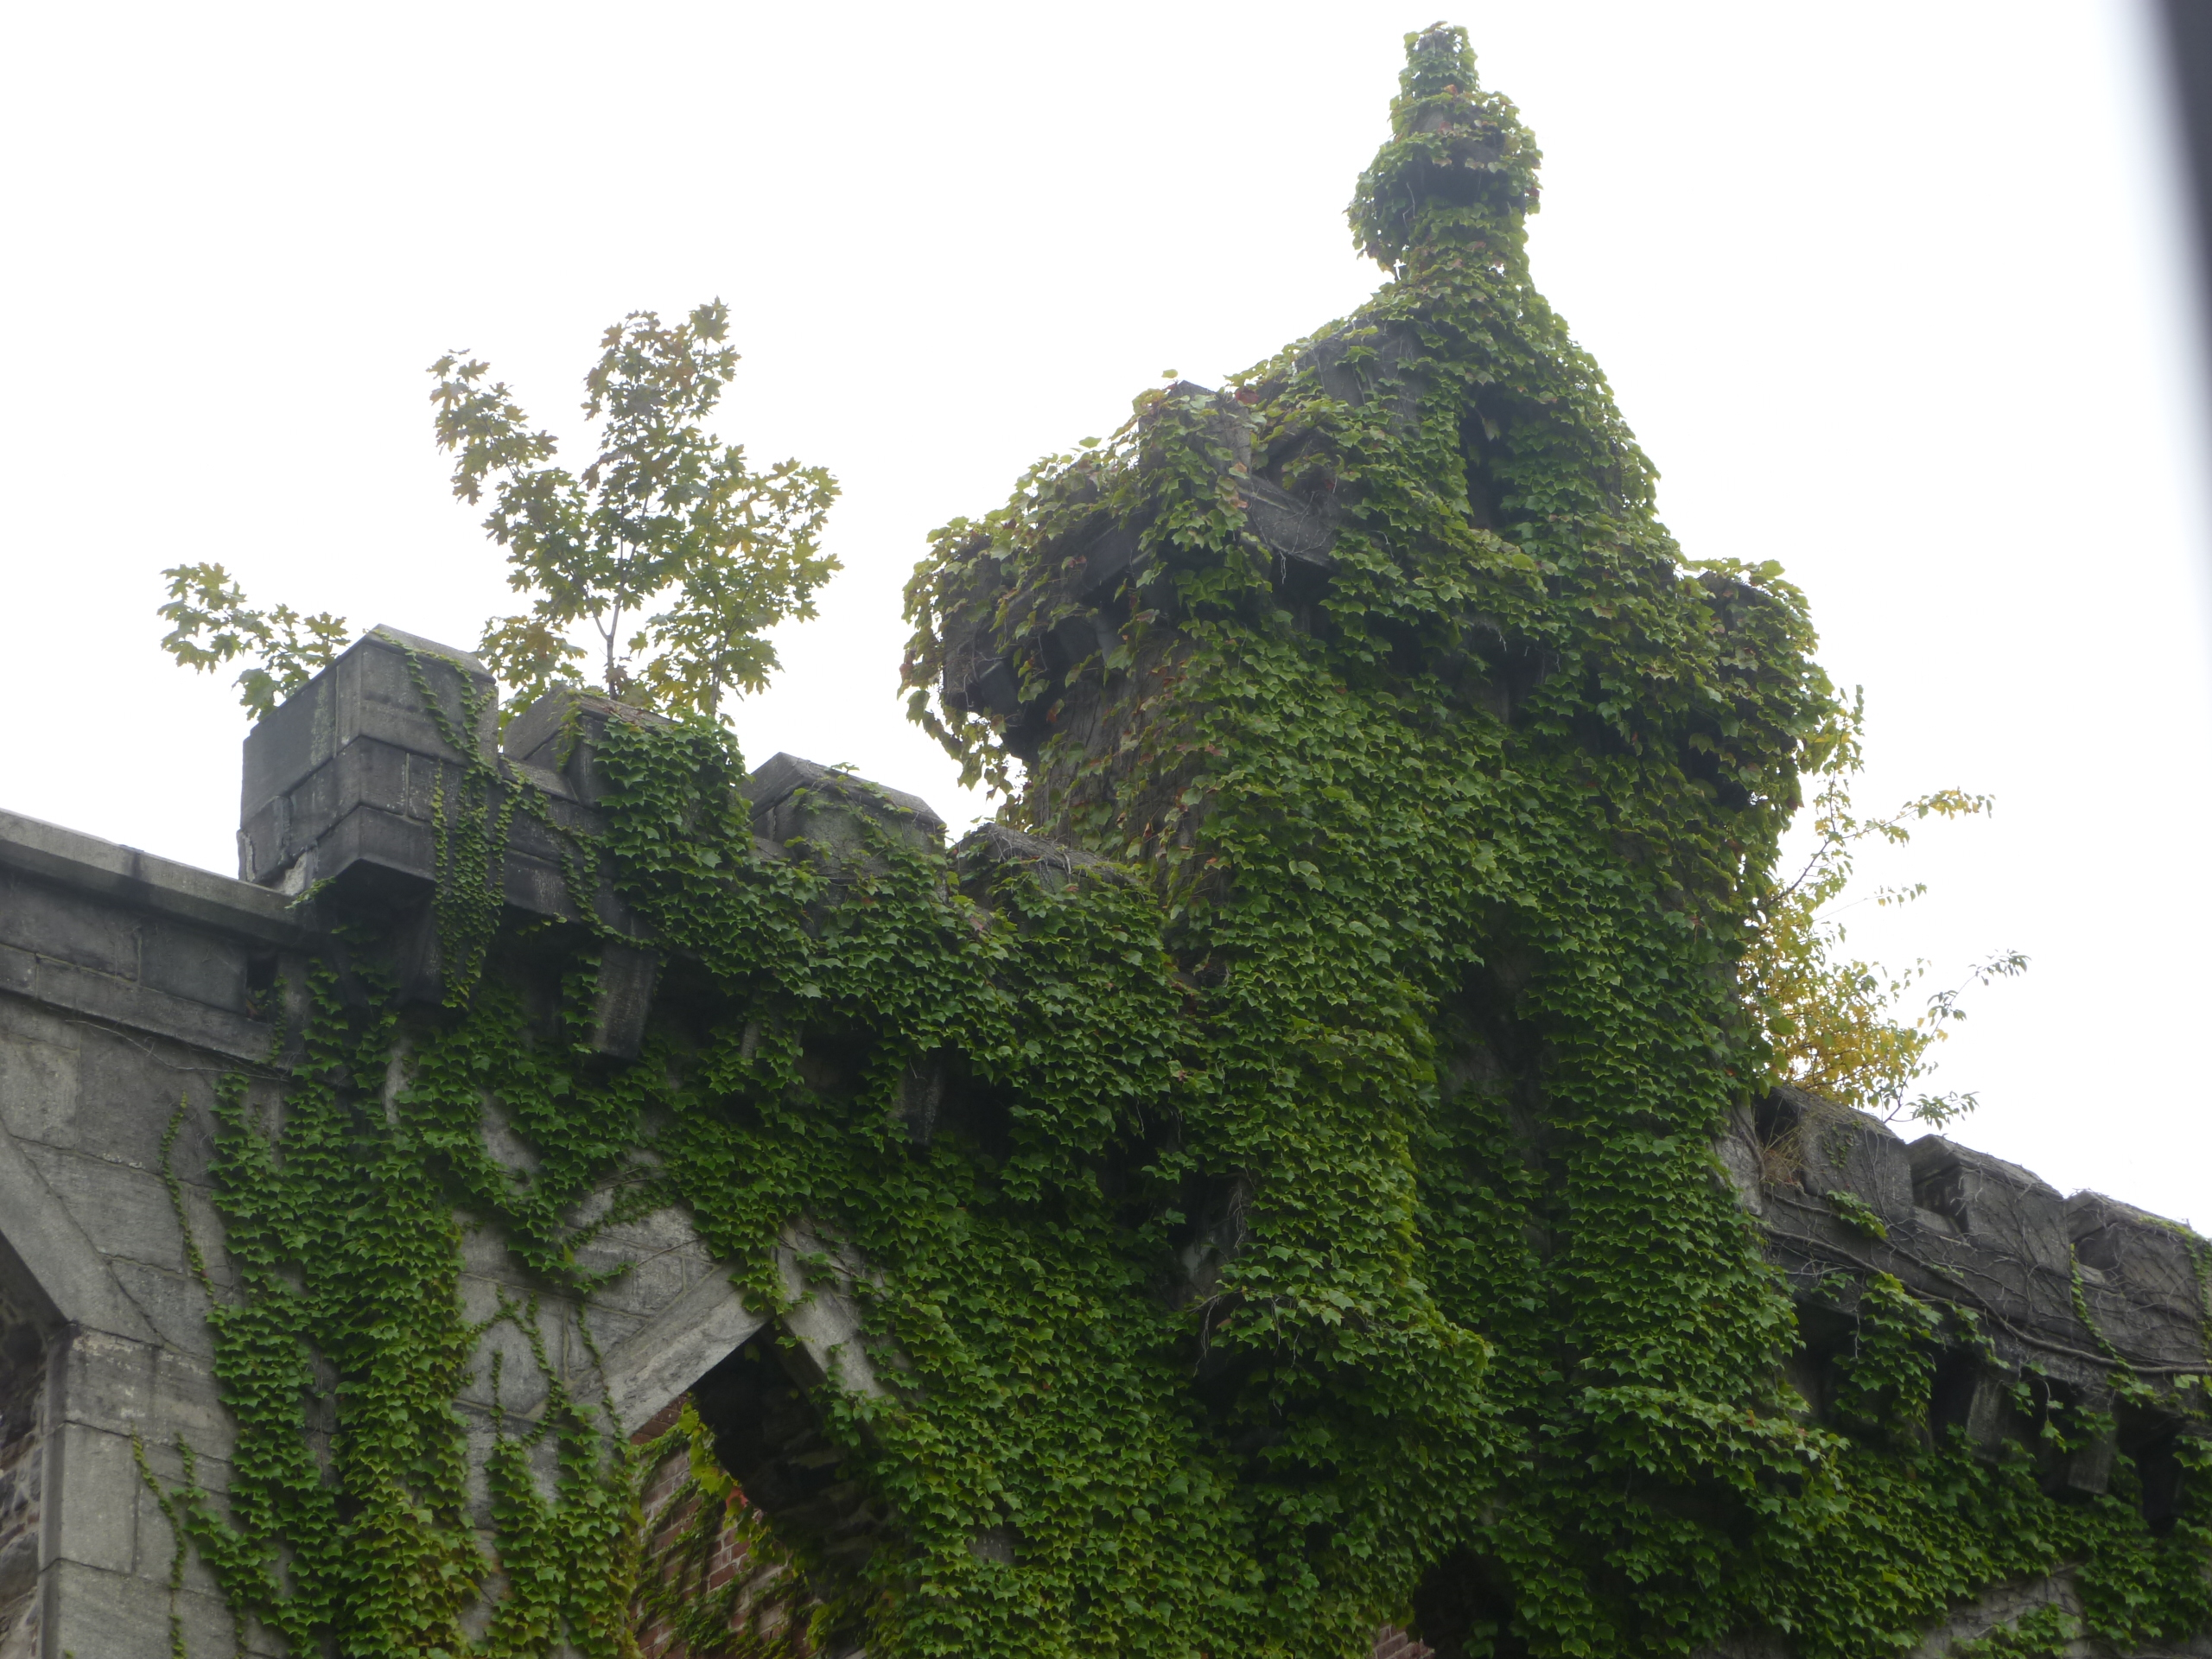 Vines cover the ruins of the old Smallpox Hospital on Roosevelt Island, New York.